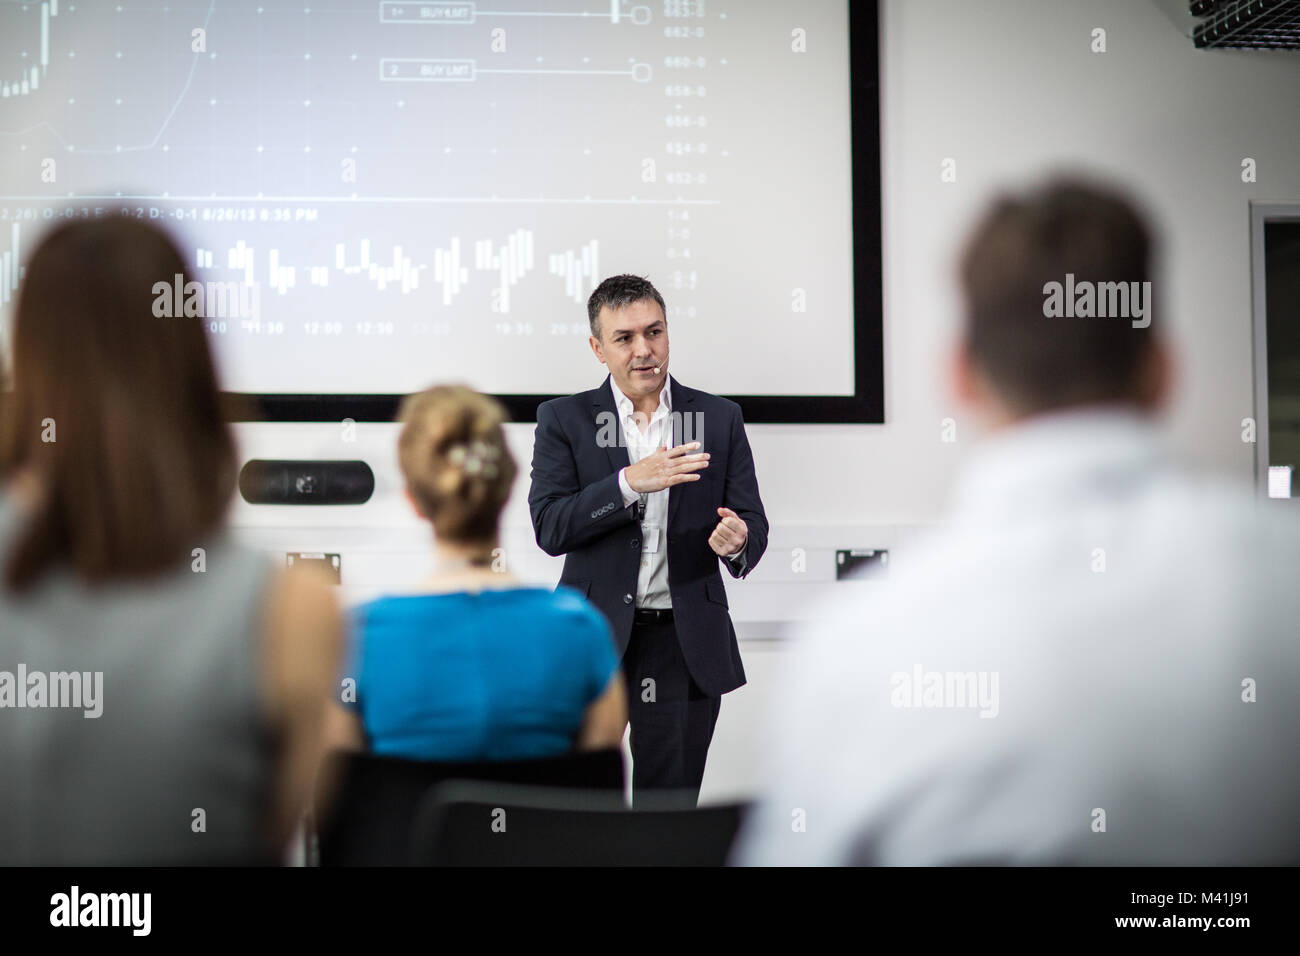 Businessman leading a training conference - Stock Image